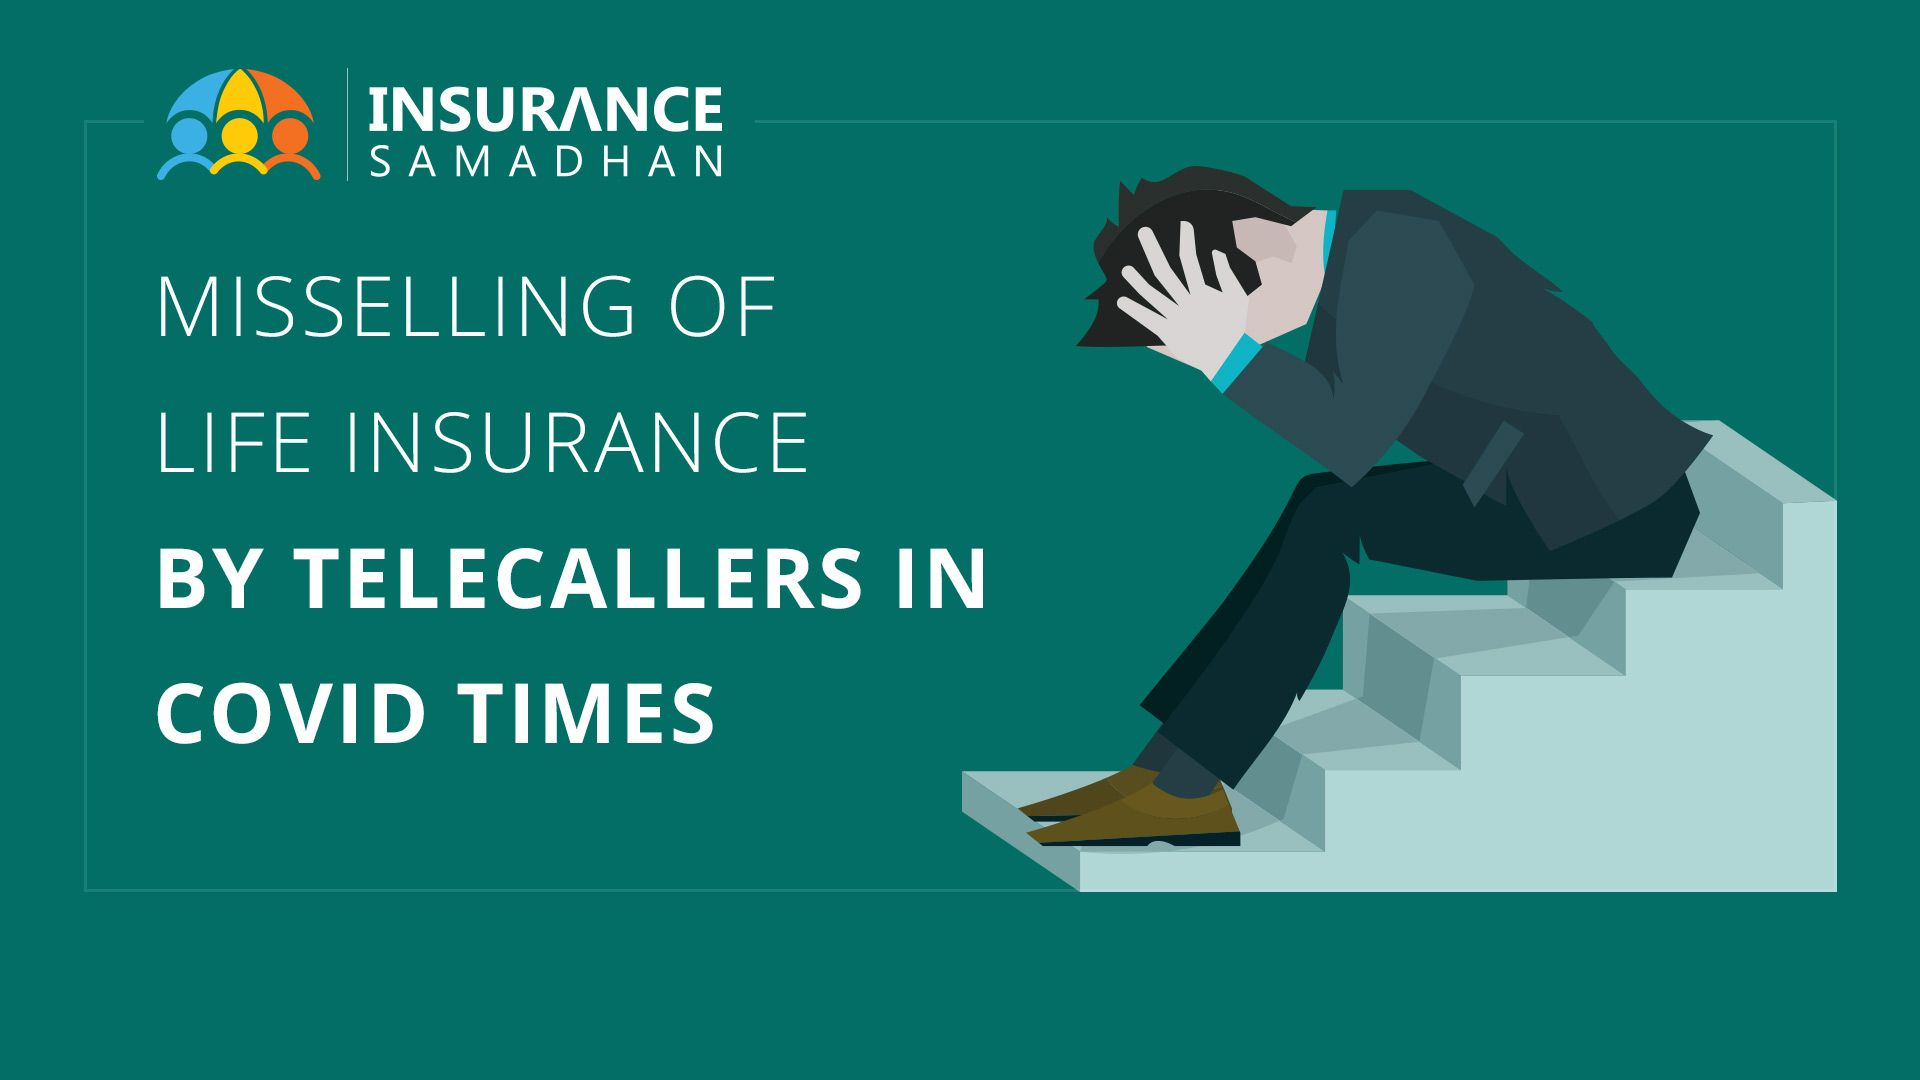 Mis-selling of Life Insurance by telecallers in COVID-19 times